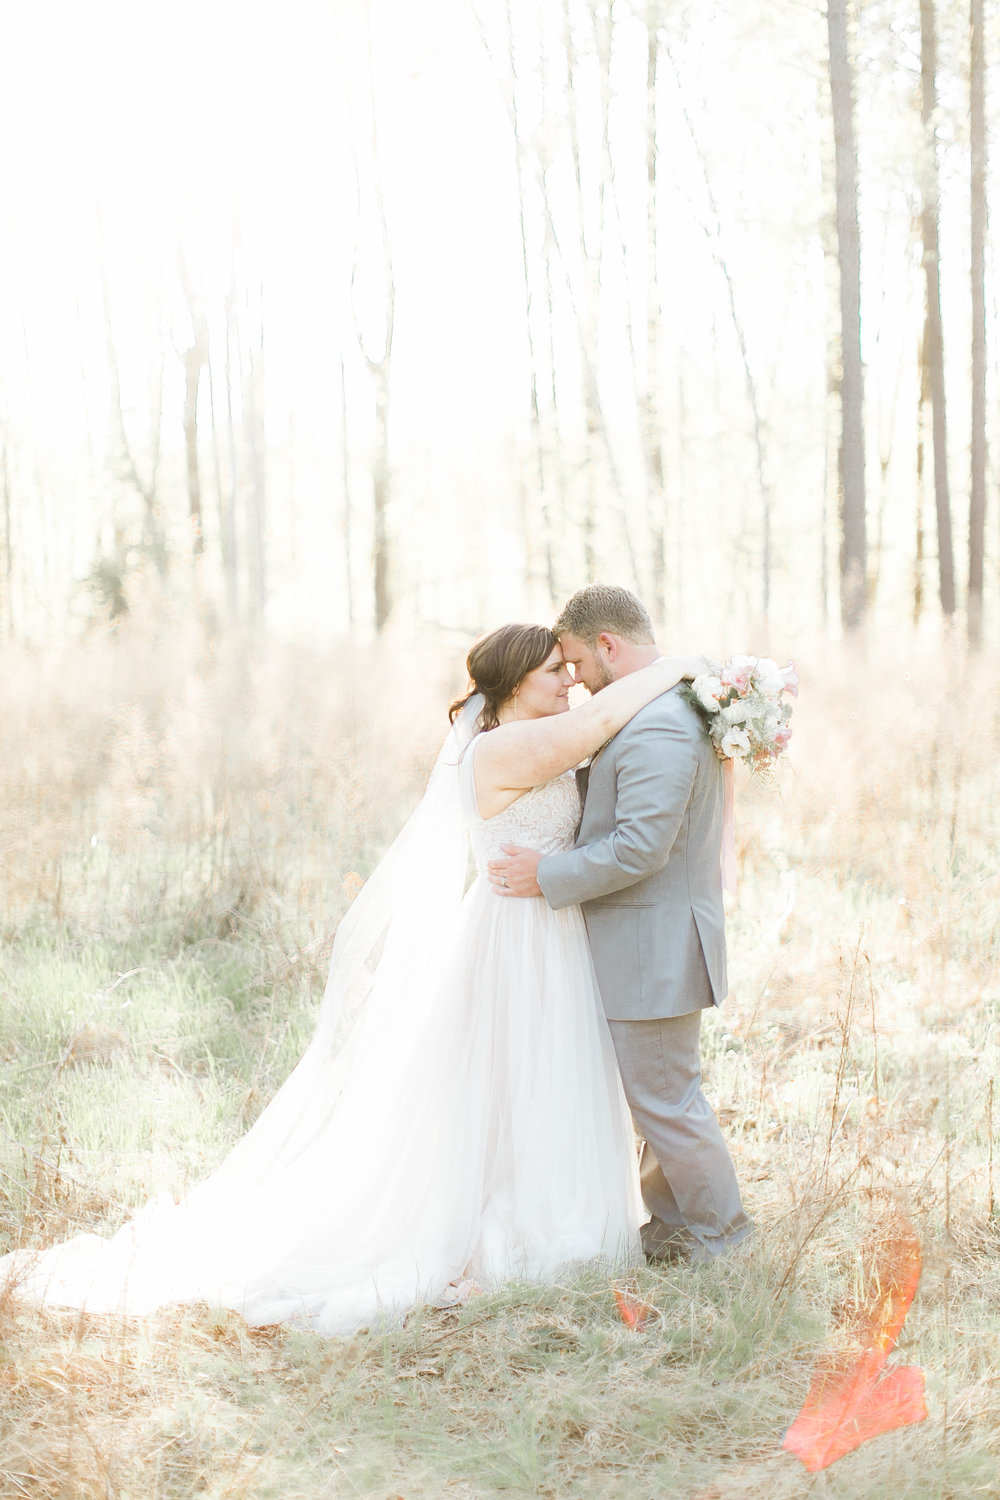 Caroline and Noah Real Wedding  Photo By Jordan Maunder  Featured on Pretty Pear Bride